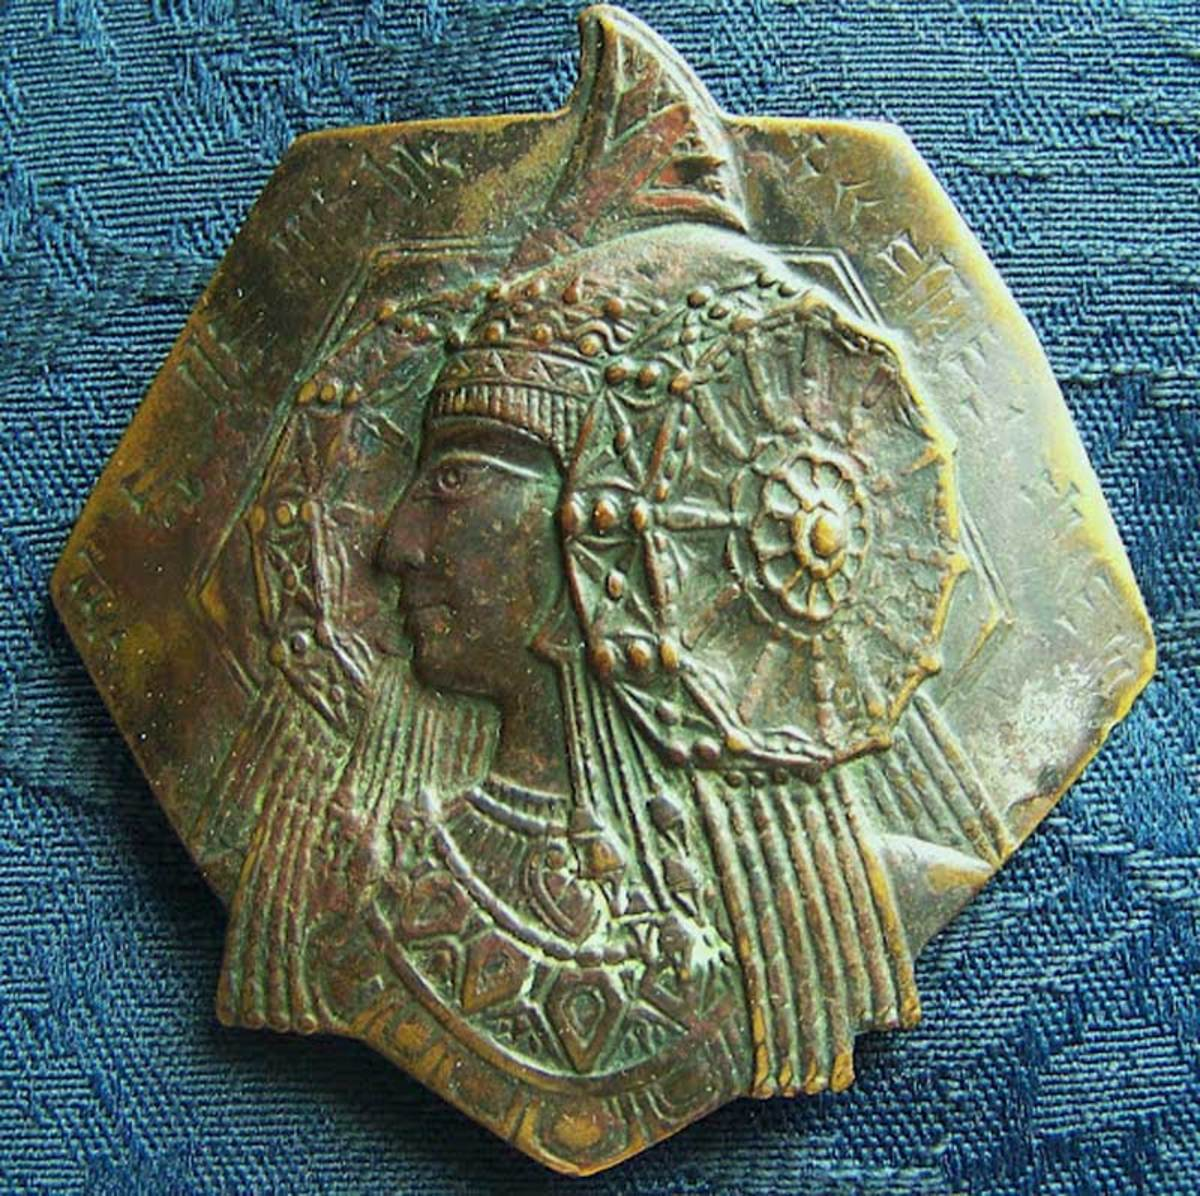 This copper medallion was found by a man digging a trench for a sewer line about six and half feet down in Utah, in 1966.